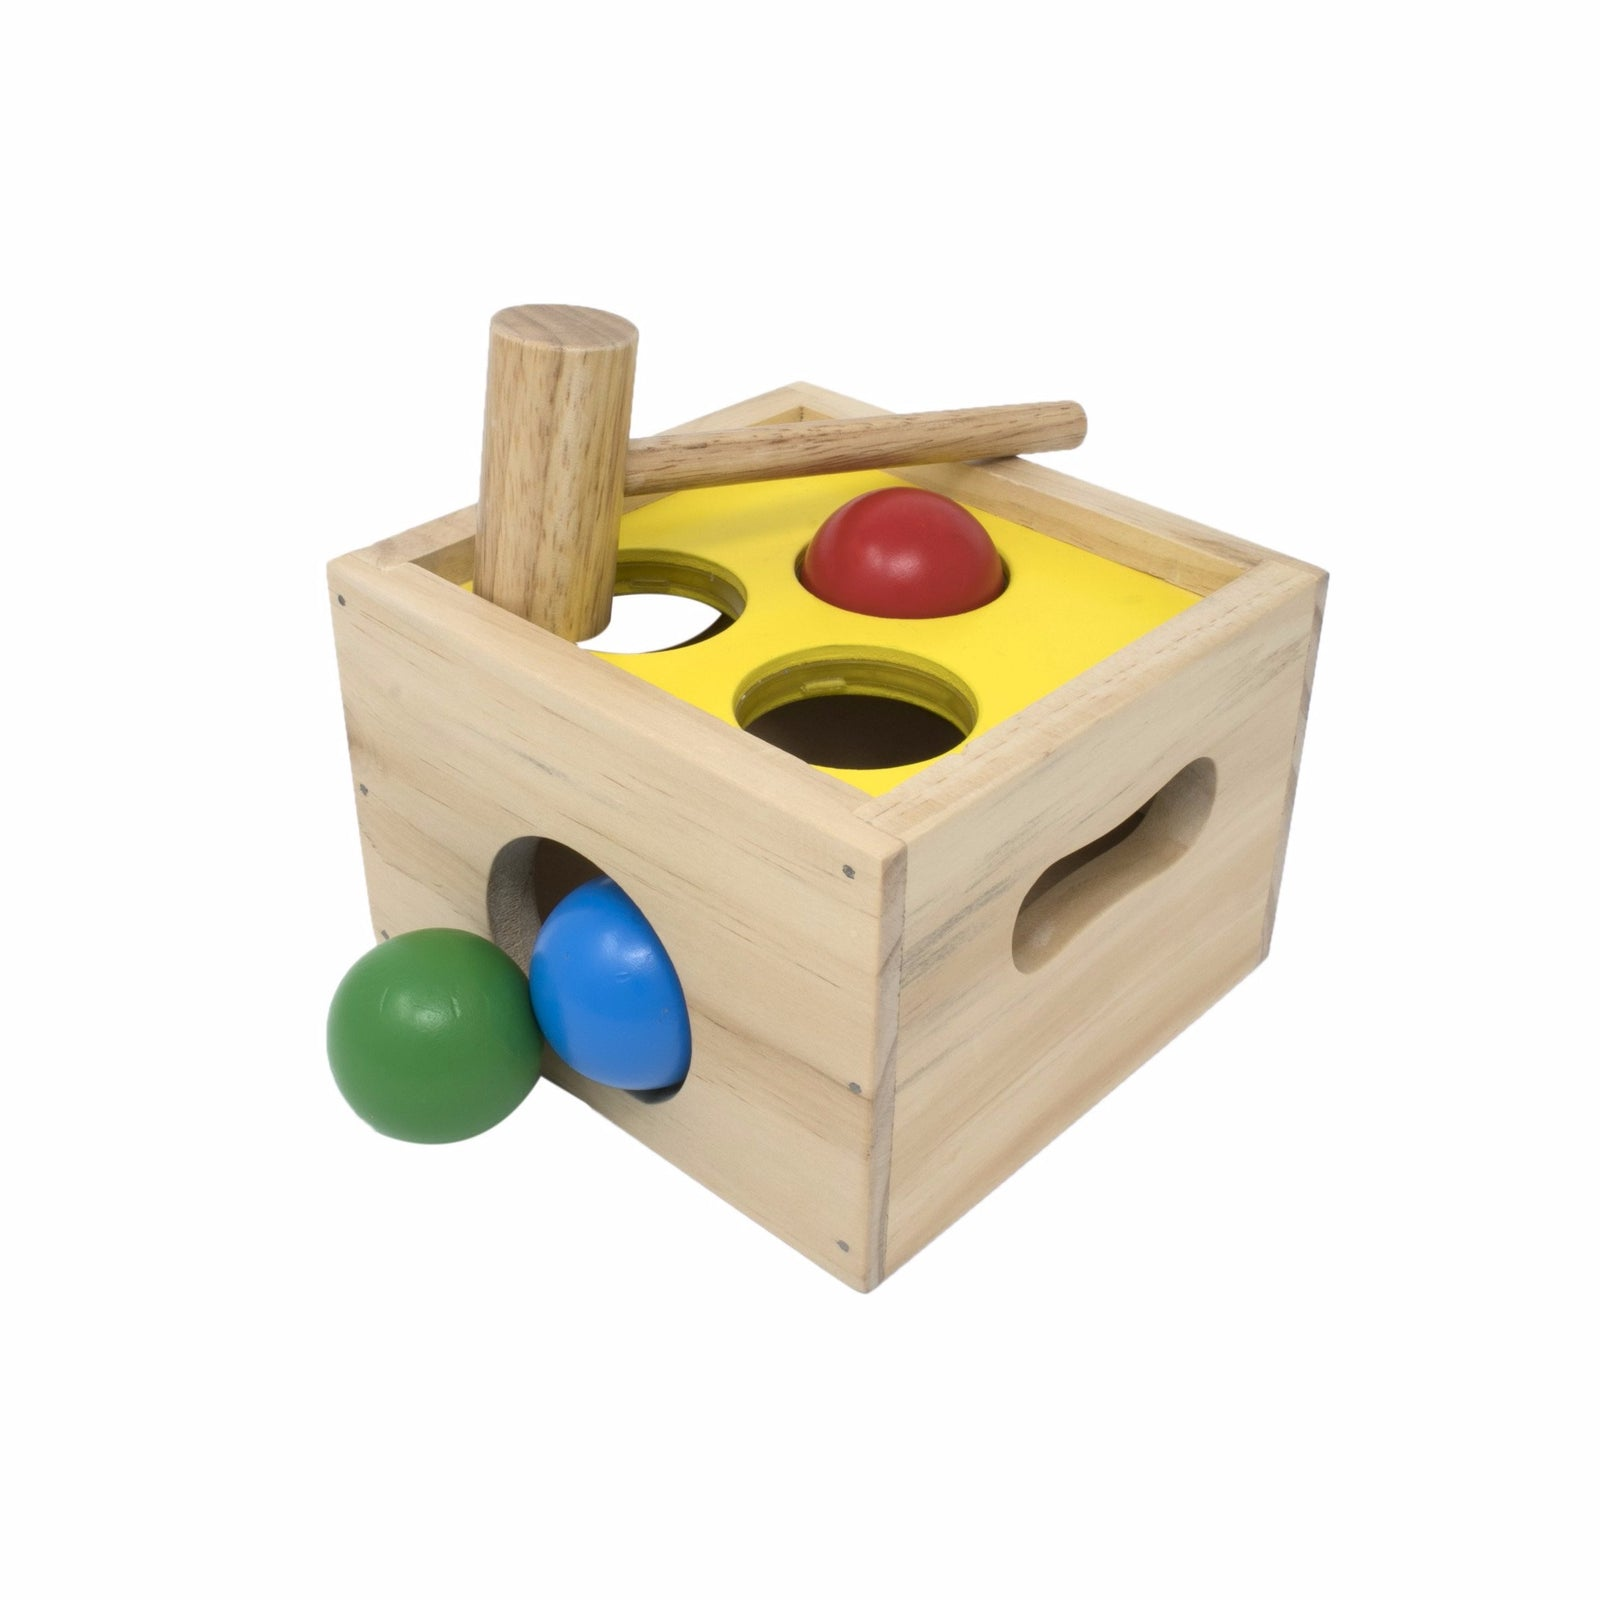 Punch Pound Early Learning Wooden Toy Educational Toy